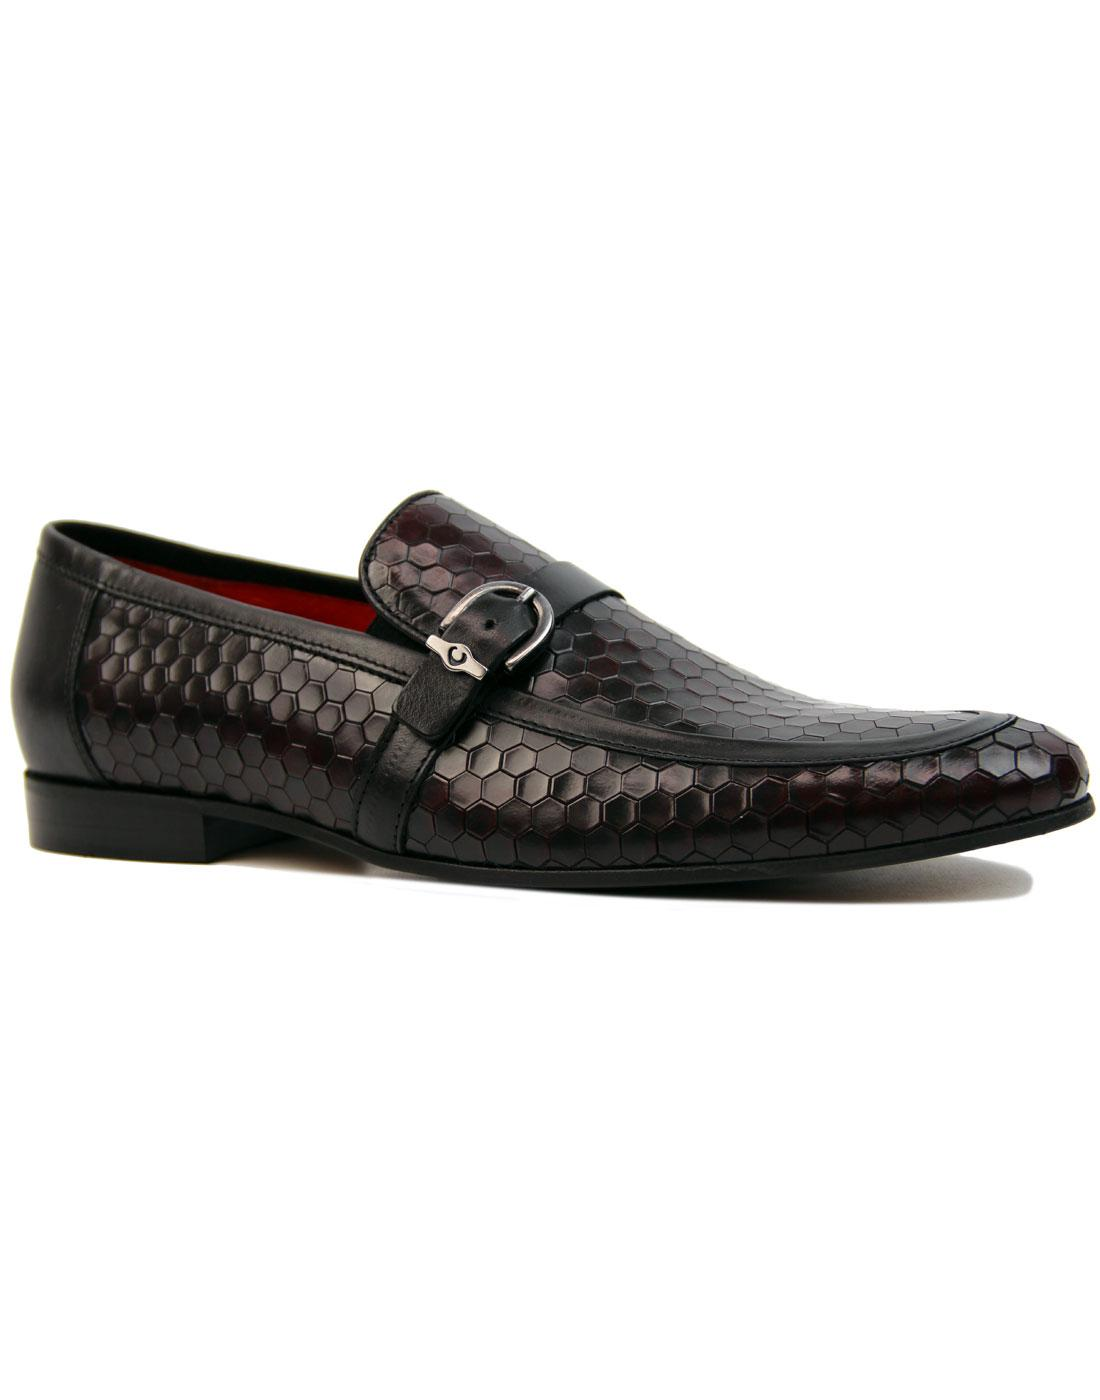 Lane LACUZZO Mod Honeycomb Leather 2 Tone Loafers